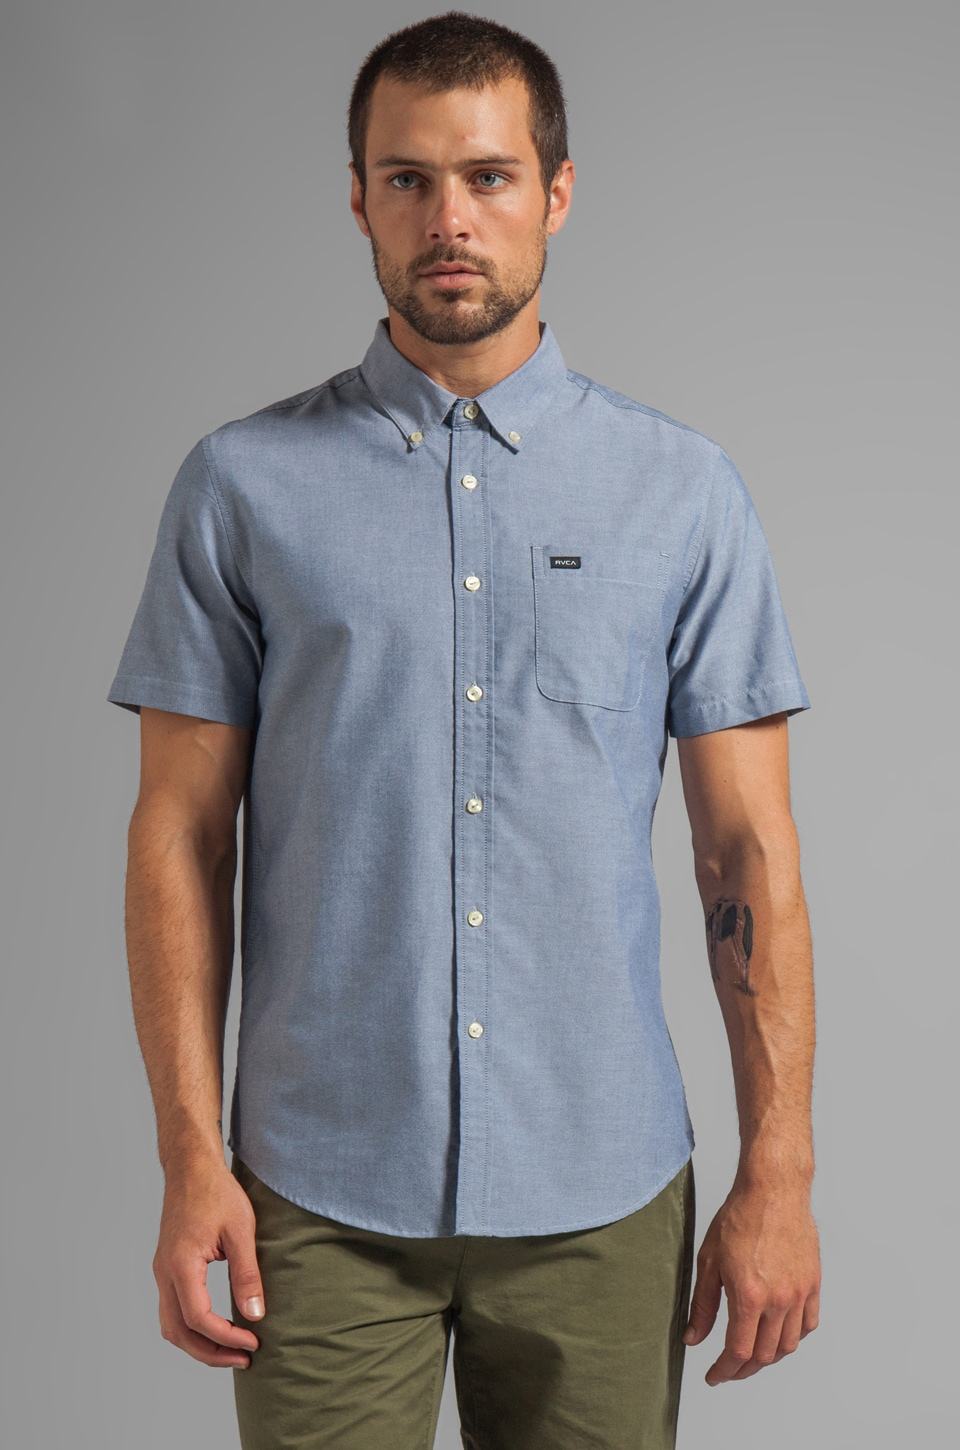 RVCA That'll Do Oxford S/S in Distant Blue